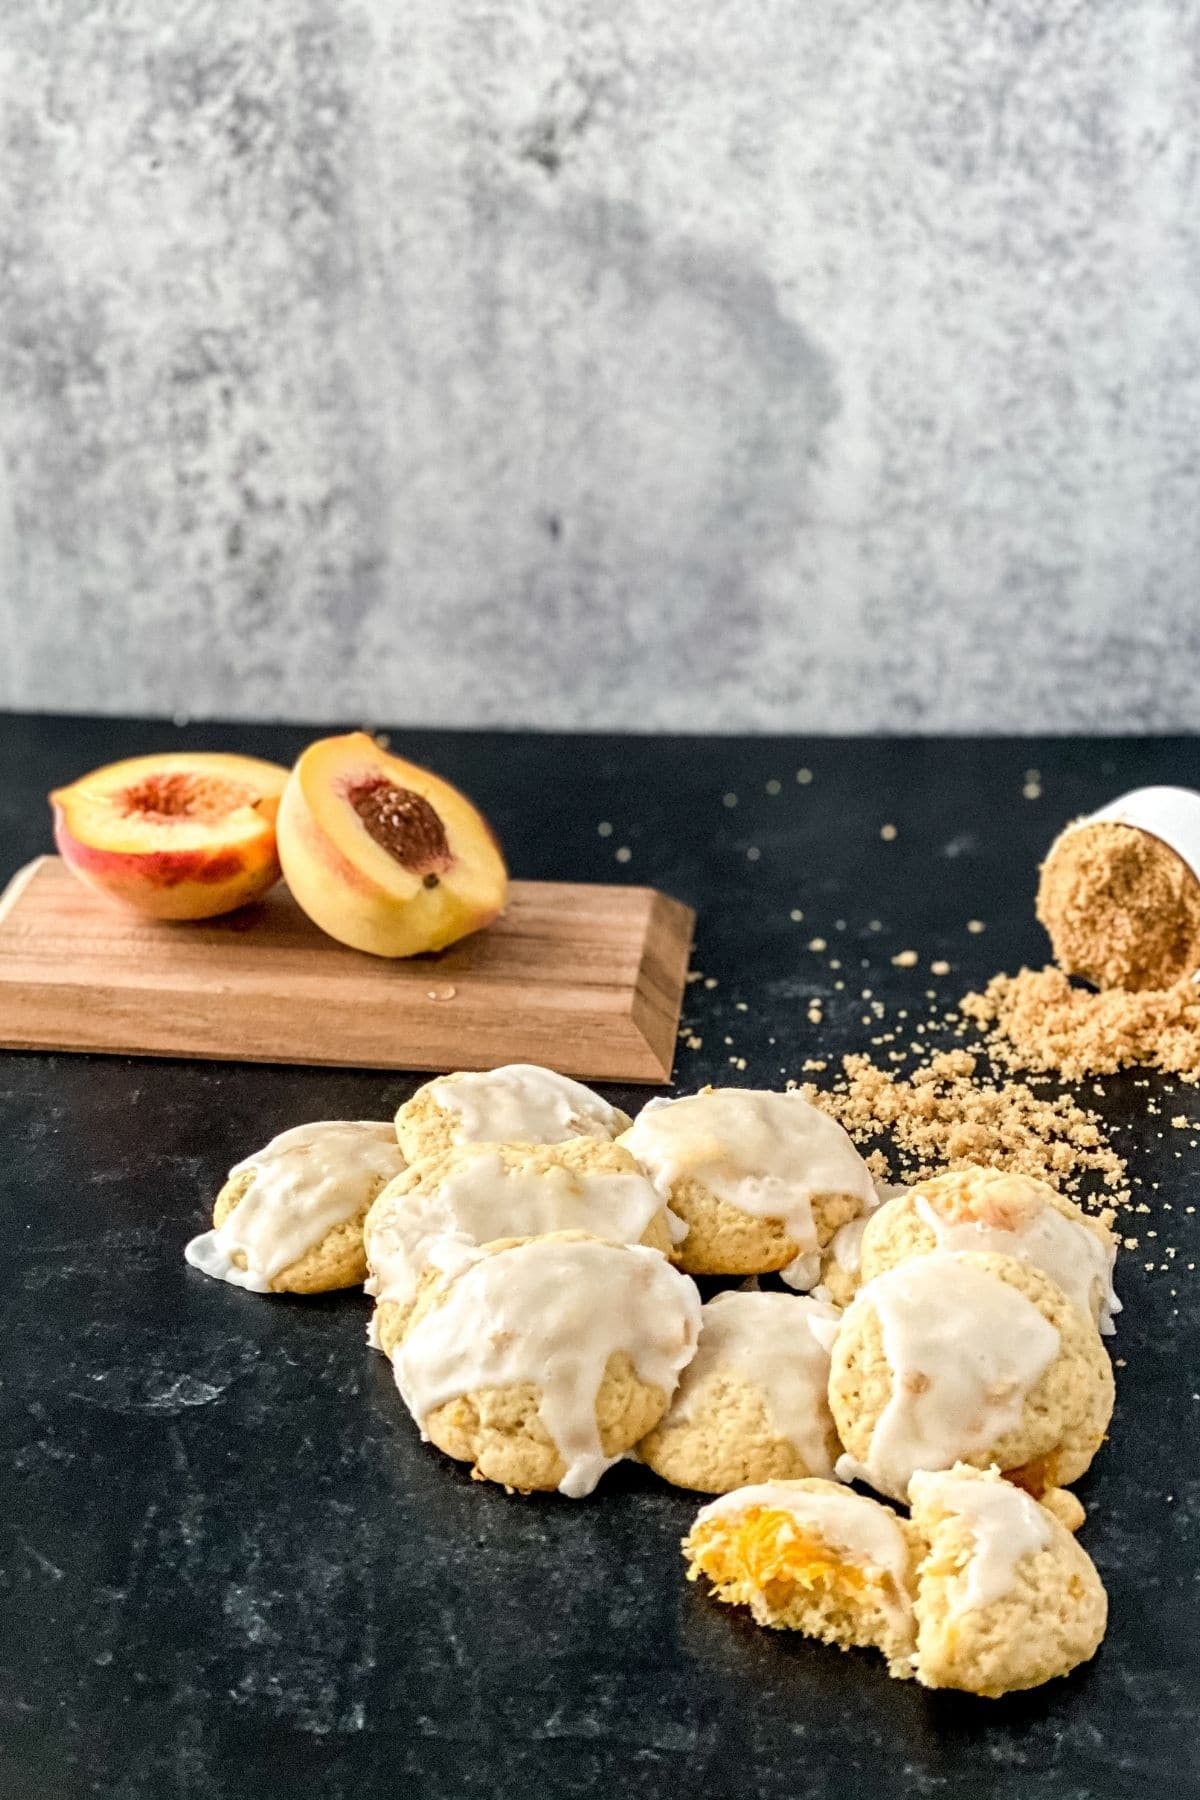 Cookies on black counter in front of cutting board with halved peach